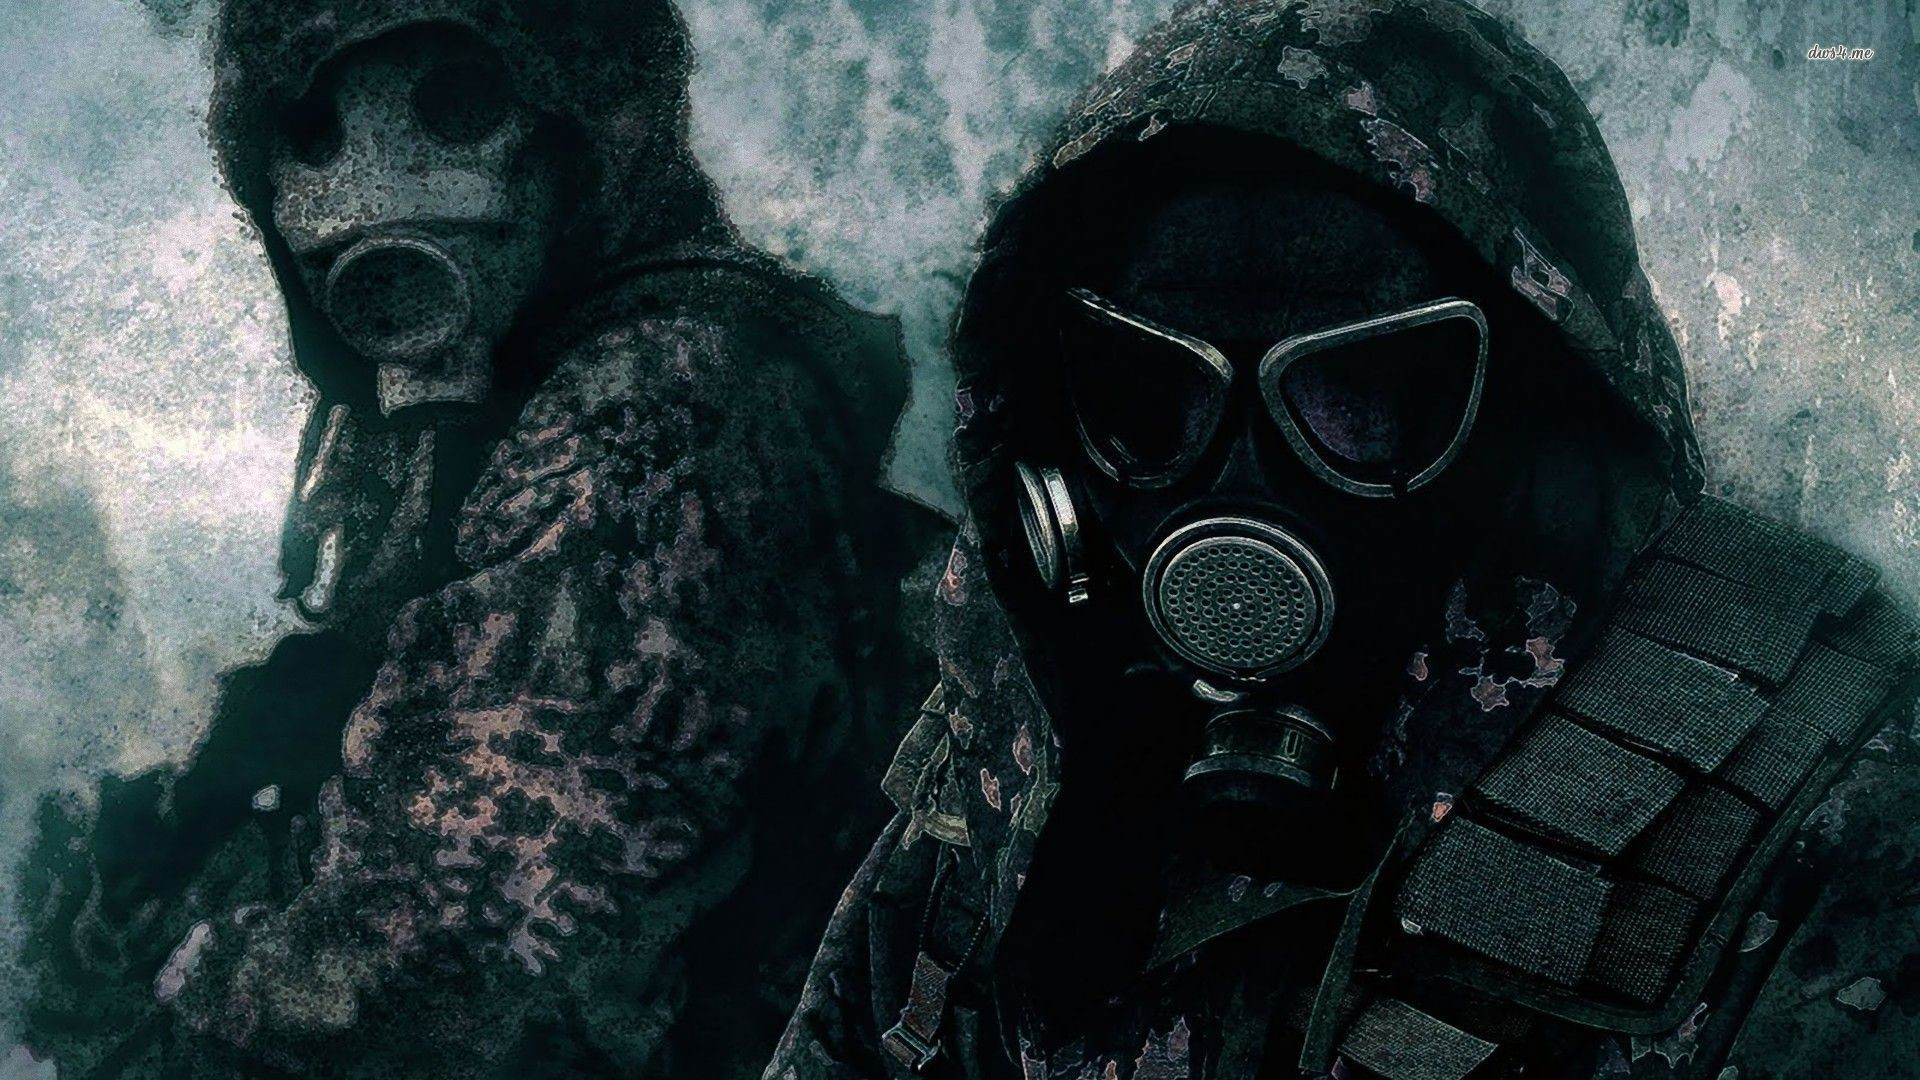 1920x1080 Post Apocalyptic Girl Soldiers In Gas Masks X Wallpaper